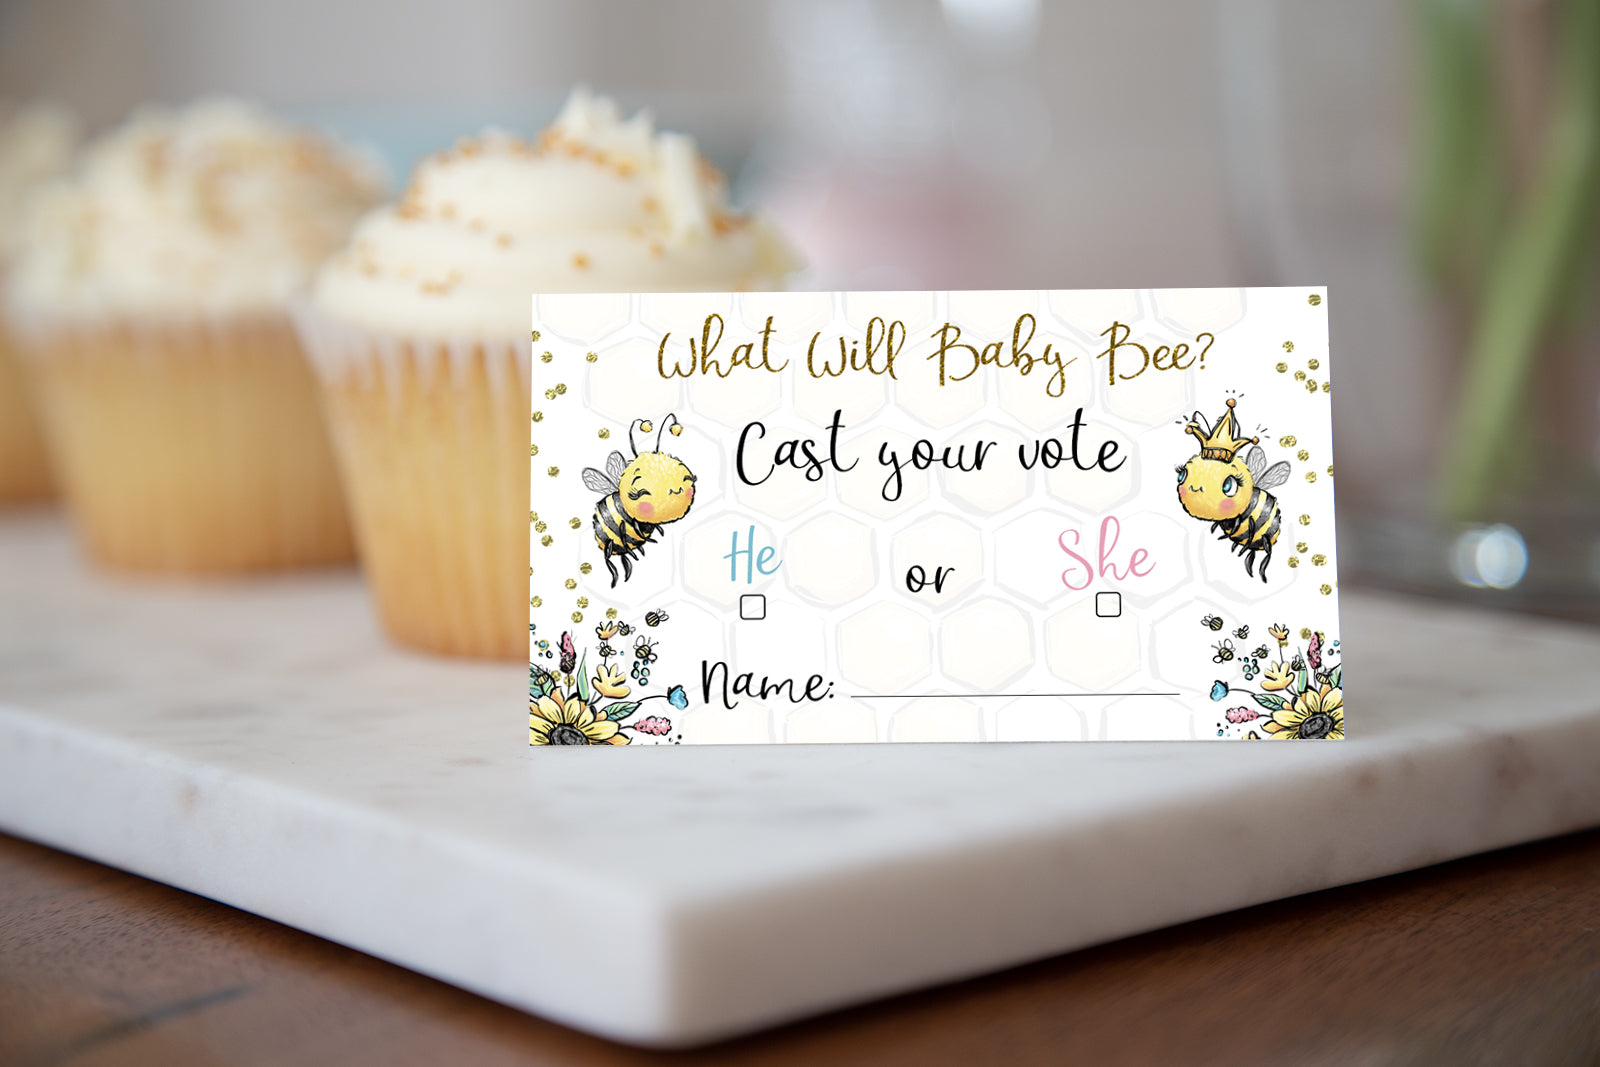 Honey Bee Cast Your Vote Cards Printable, Boy or Girl | Bee Gender Reveal Game - 61A